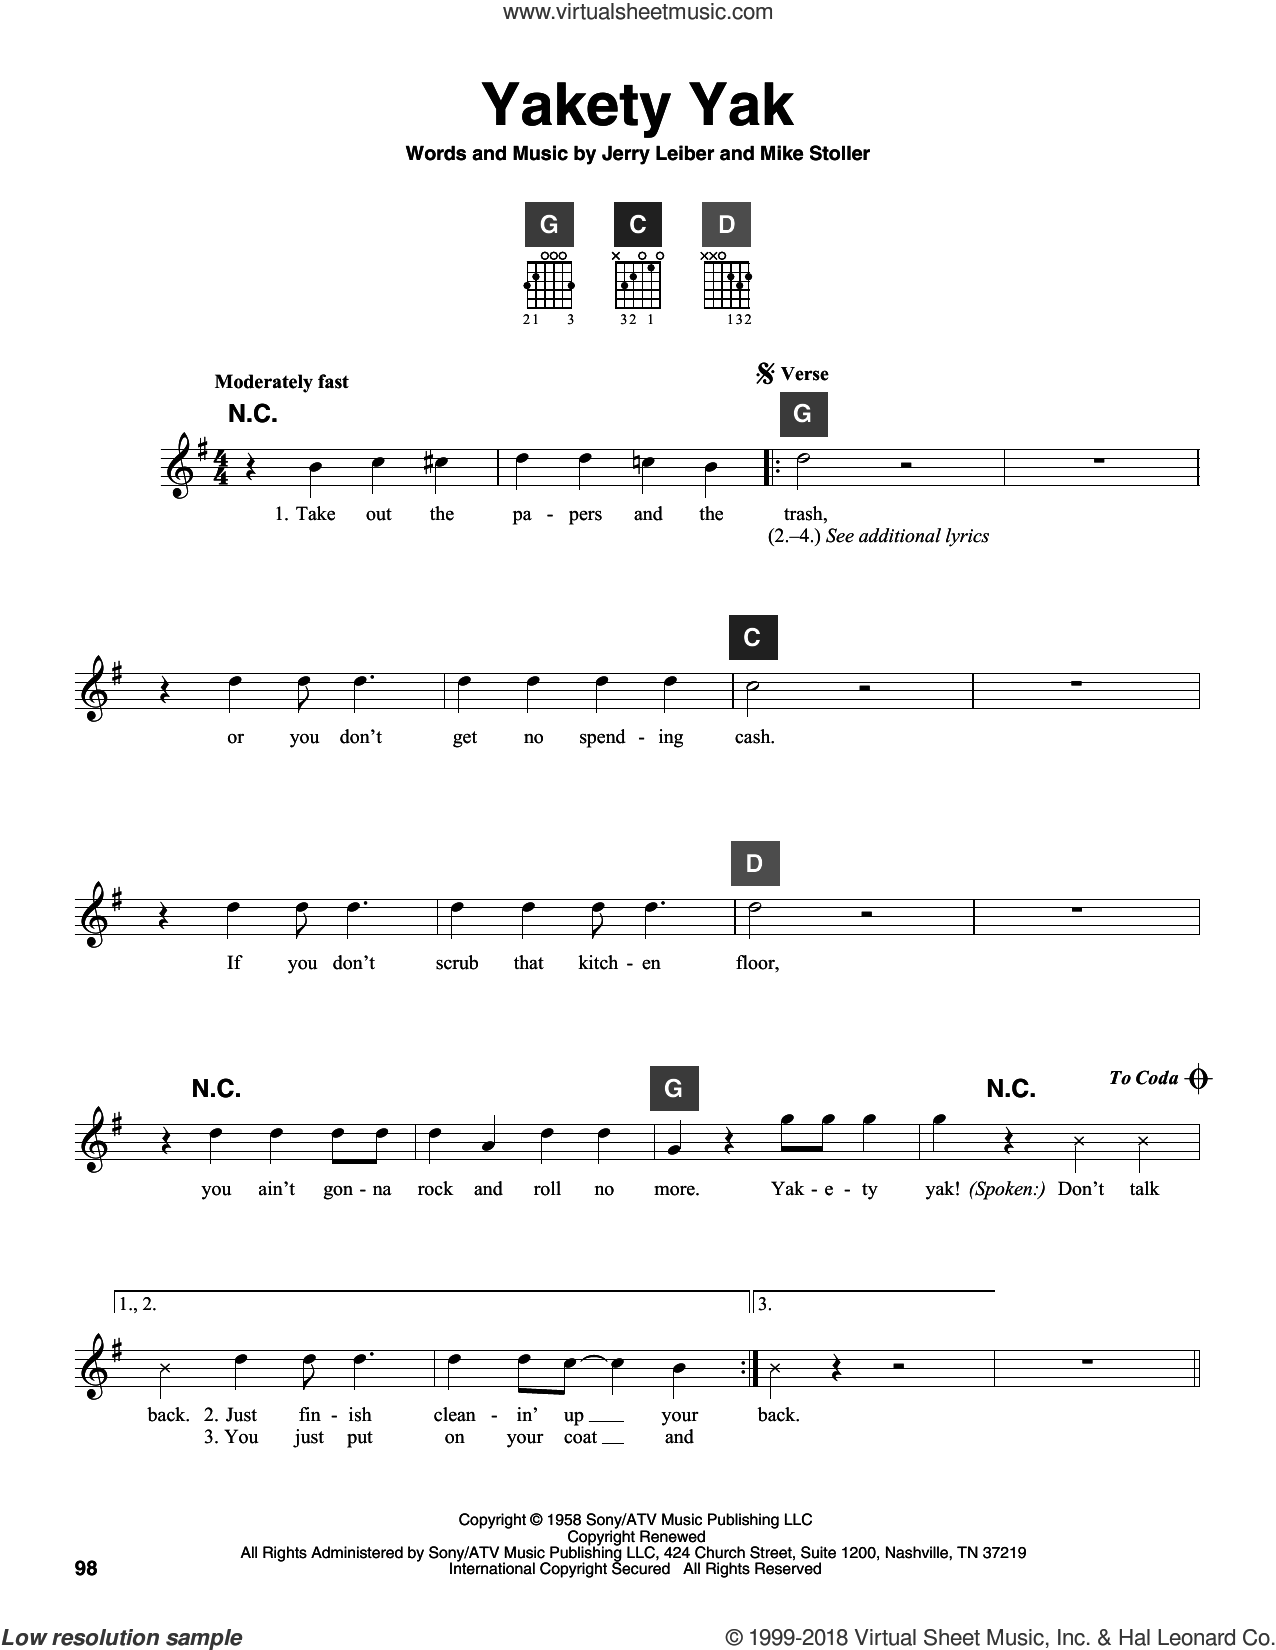 Yakety Yak sheet music for guitar solo (ChordBuddy system) by The Coasters, Jerry Leiber and Mike Stoller, intermediate guitar (ChordBuddy system)